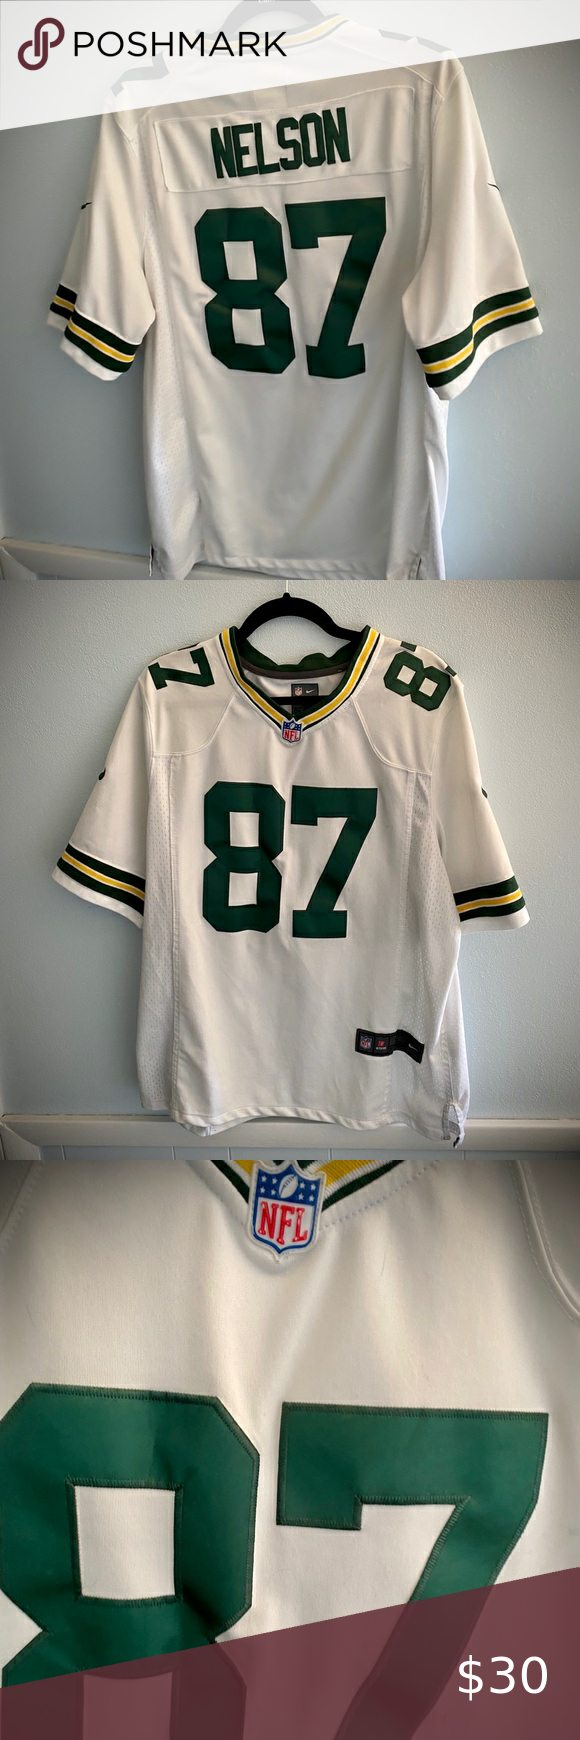 Green Bay Packers 87 Nelson Jersey Official Nfl In 2020 Nike Shirts Green Bay Packers Nfl